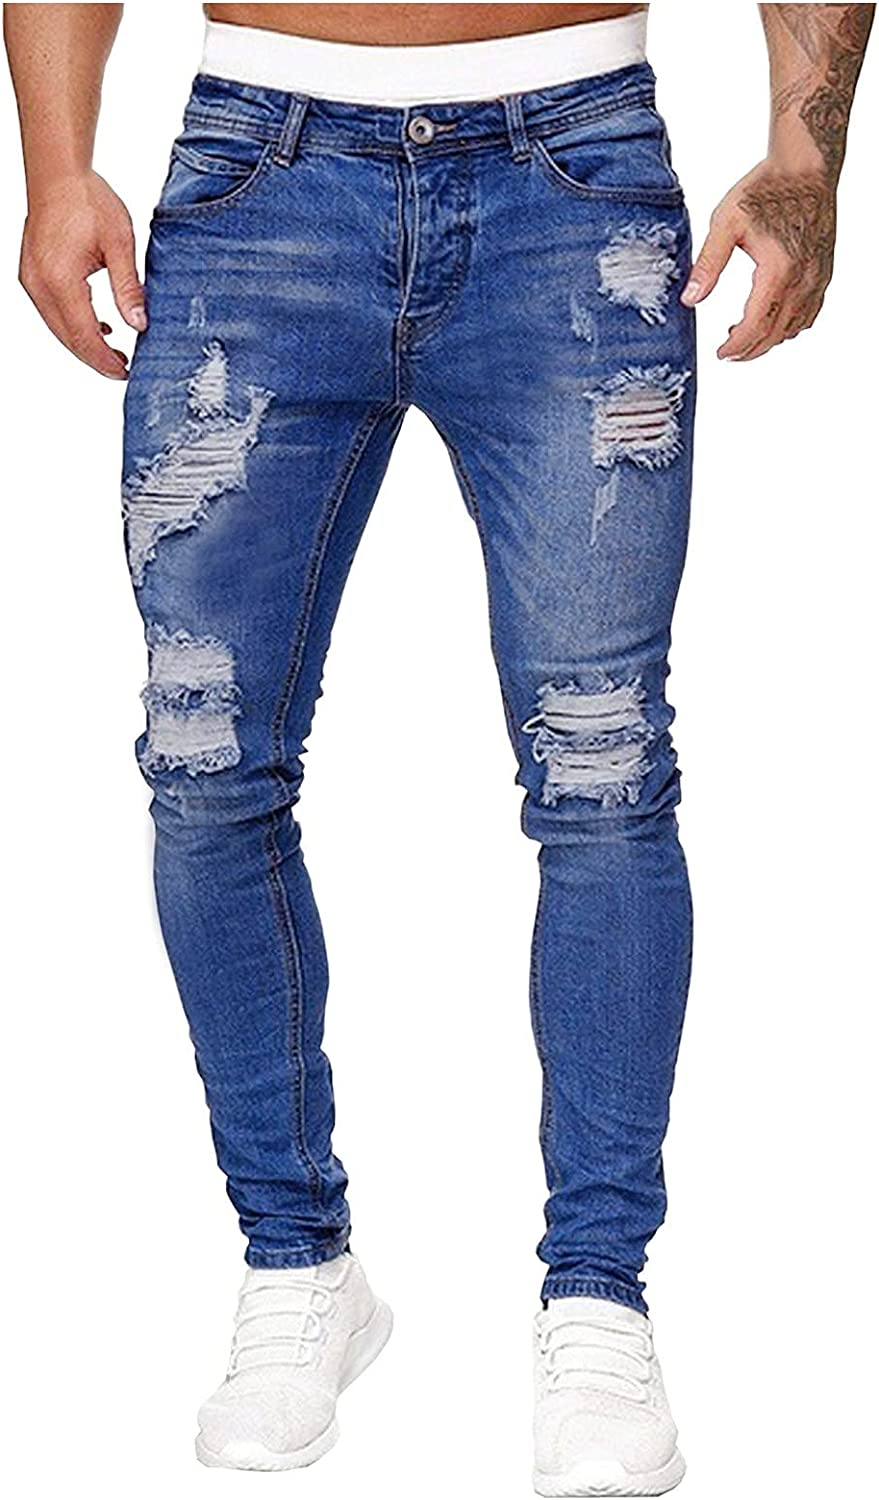 Men's Ripped Jeans Slim Fit Stretch Jeans Skinny Vintage Hole Pants Frayed Gradient Washed Trousers Pencil Pants